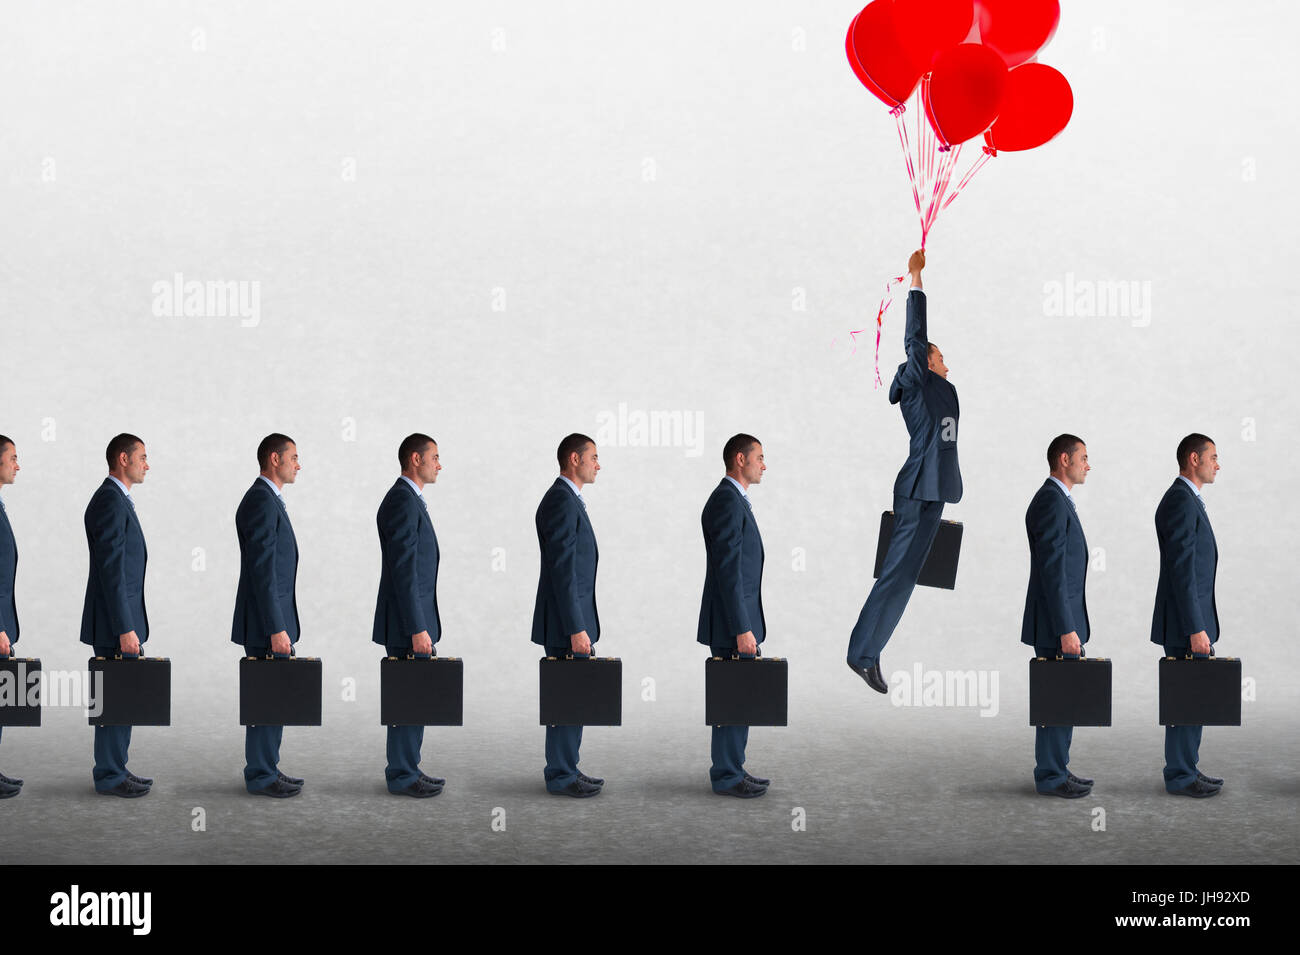 entrepreneurial business concept businessman rising above a queue of businessmen with helium balloons - Stock Image